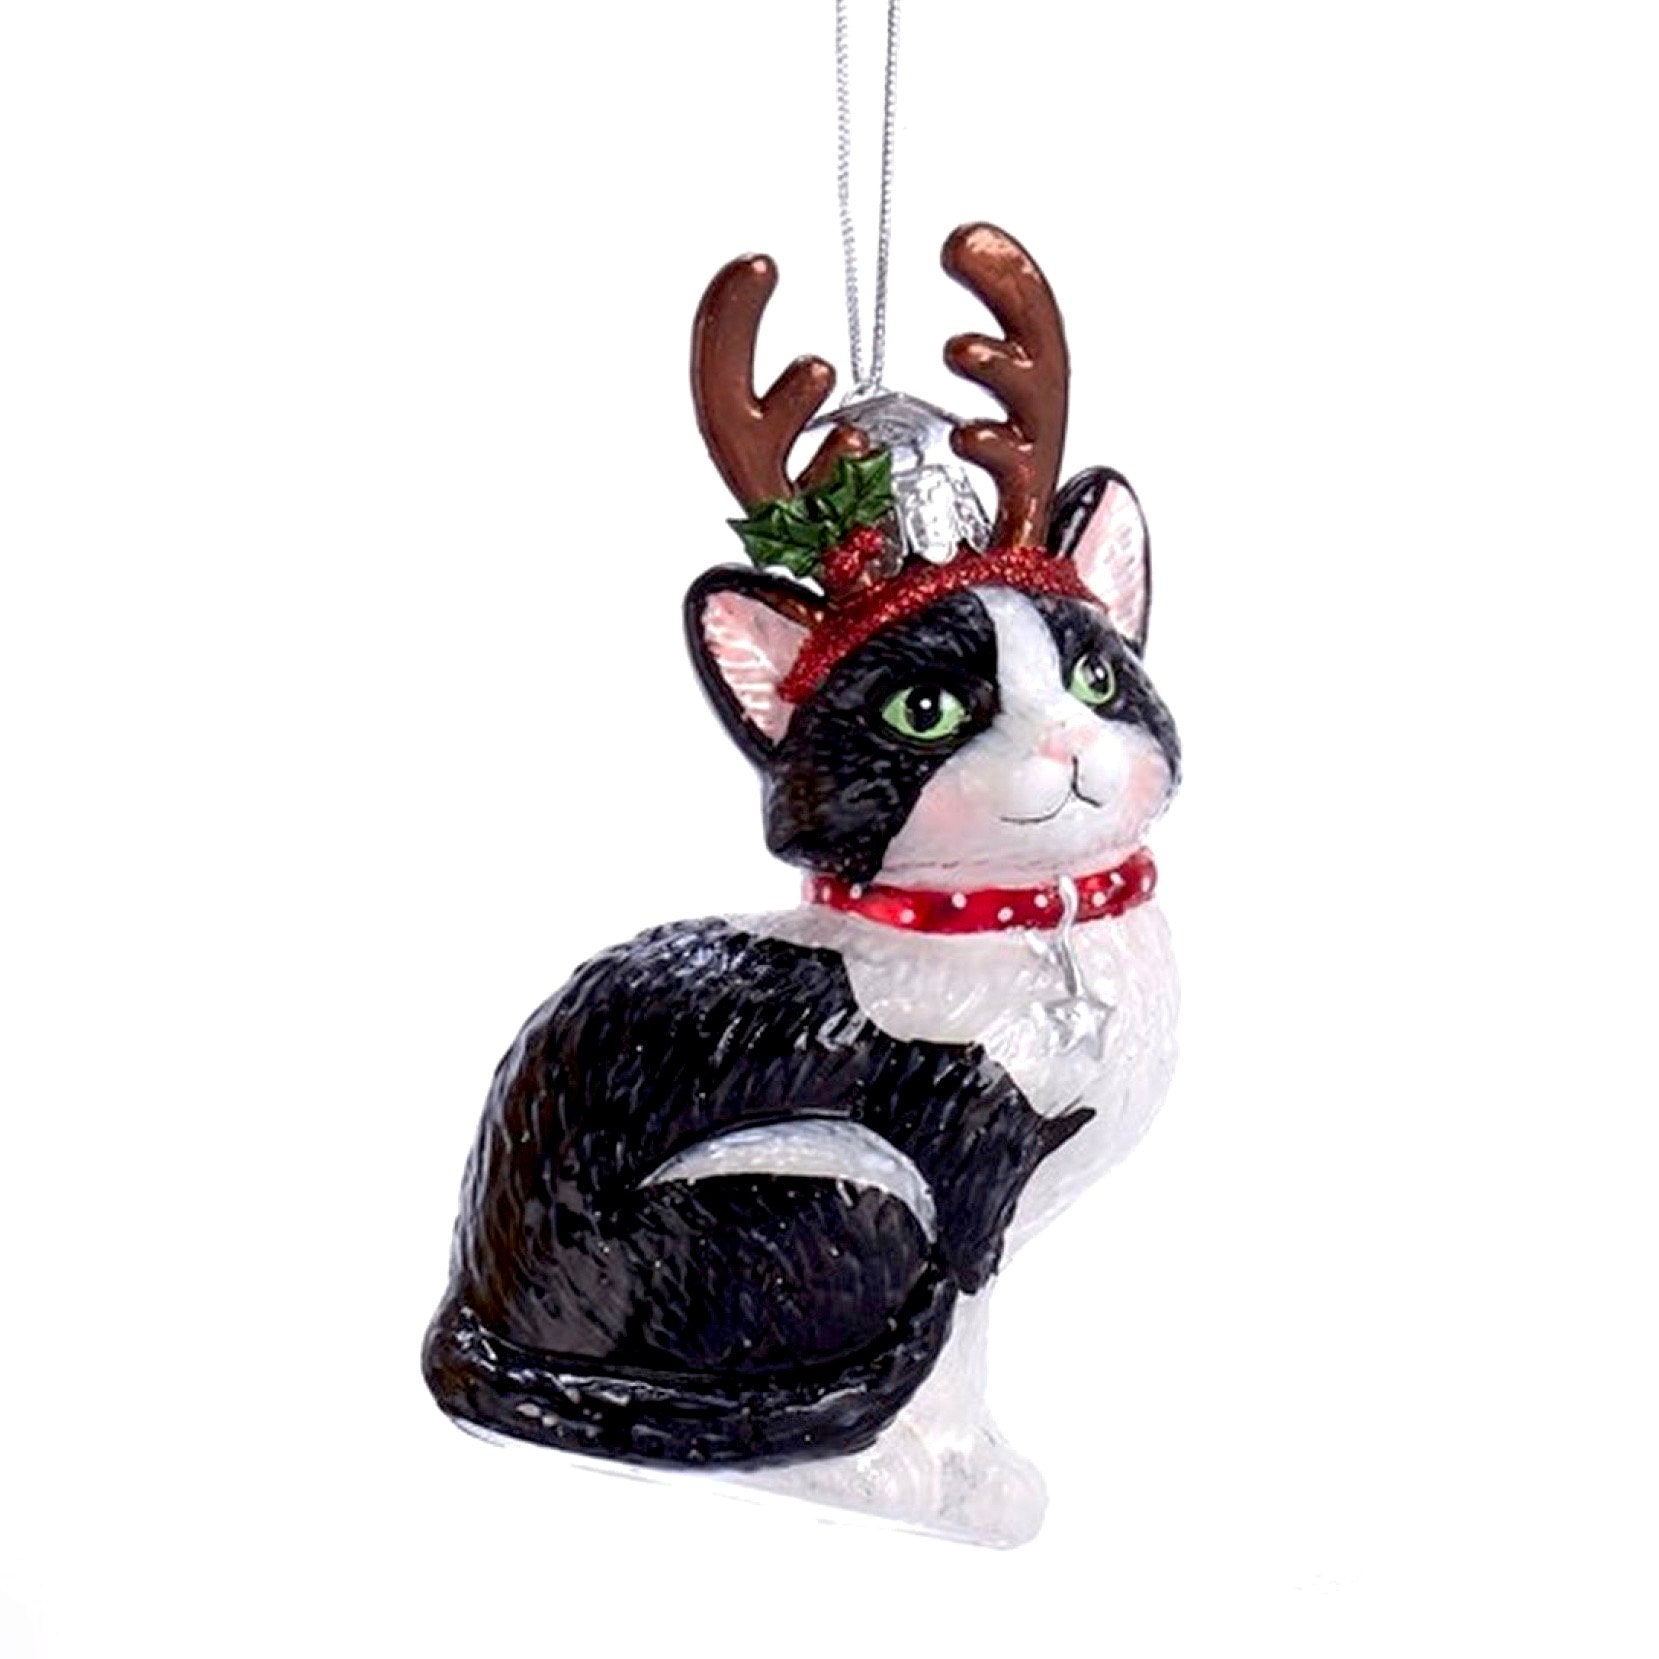 Kurt Adler Black and White Cat with Antlers Glass Ornament | Putti Christmas